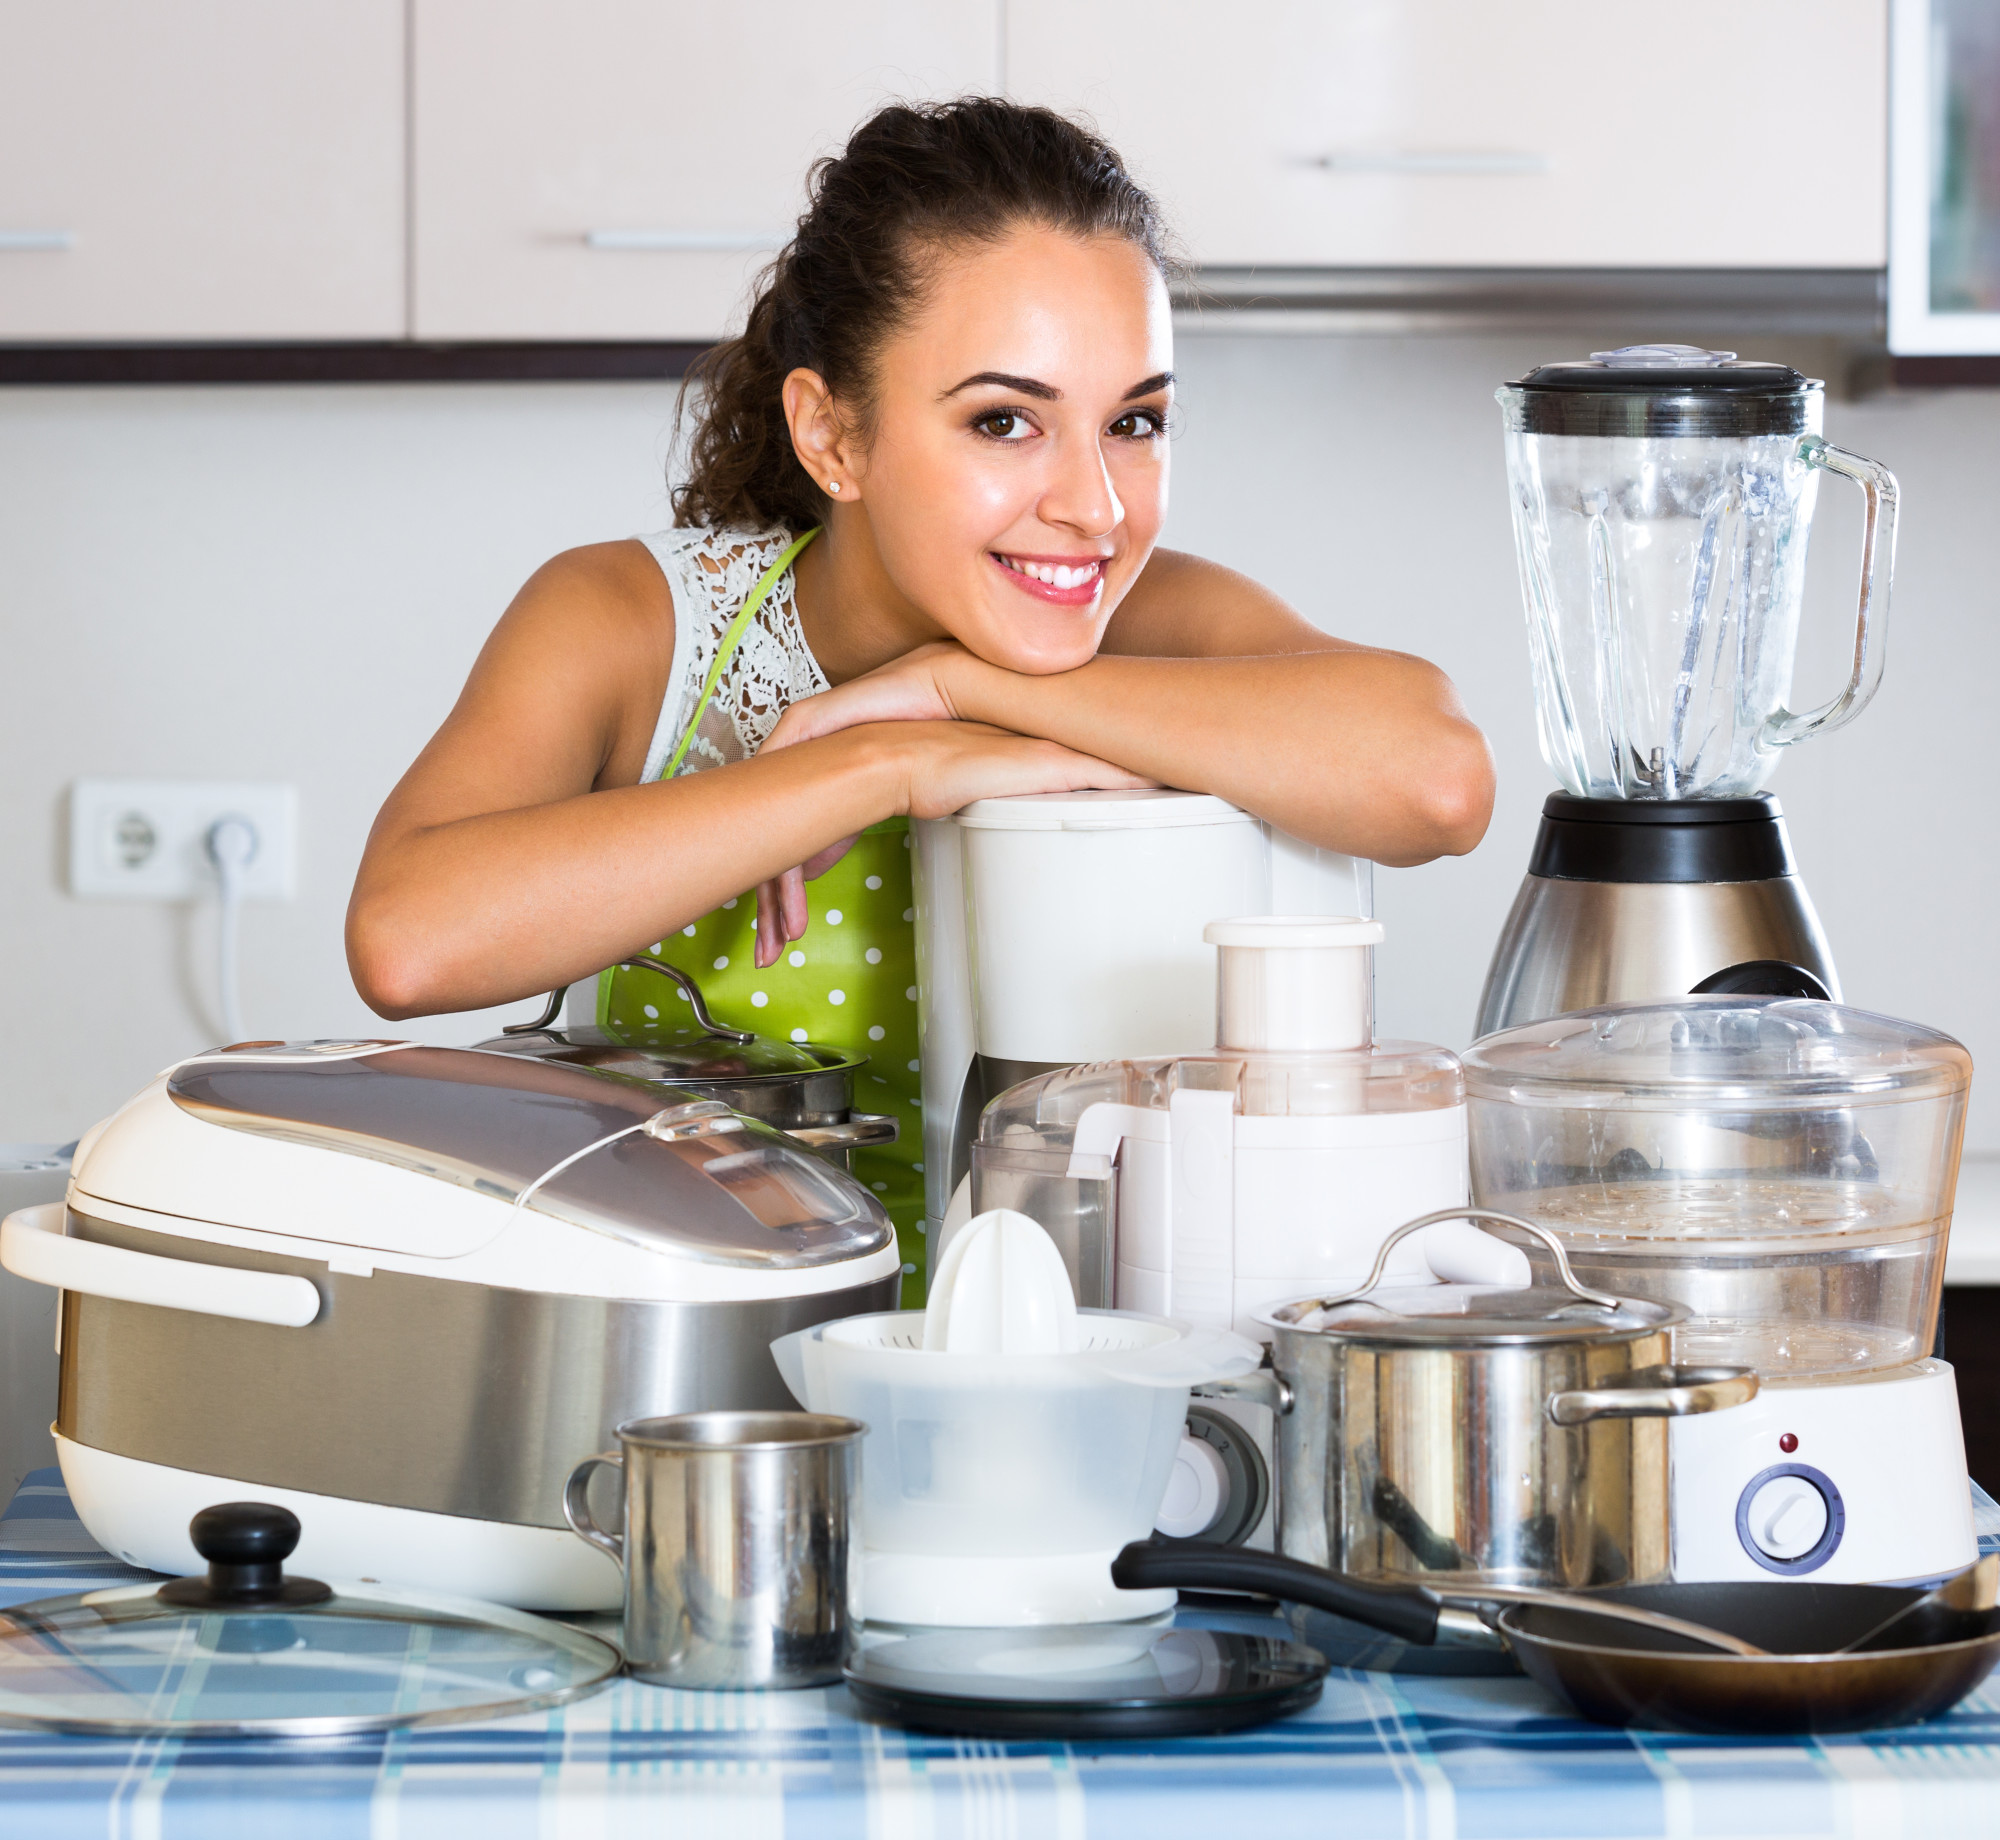 Woman Posing With Appliances